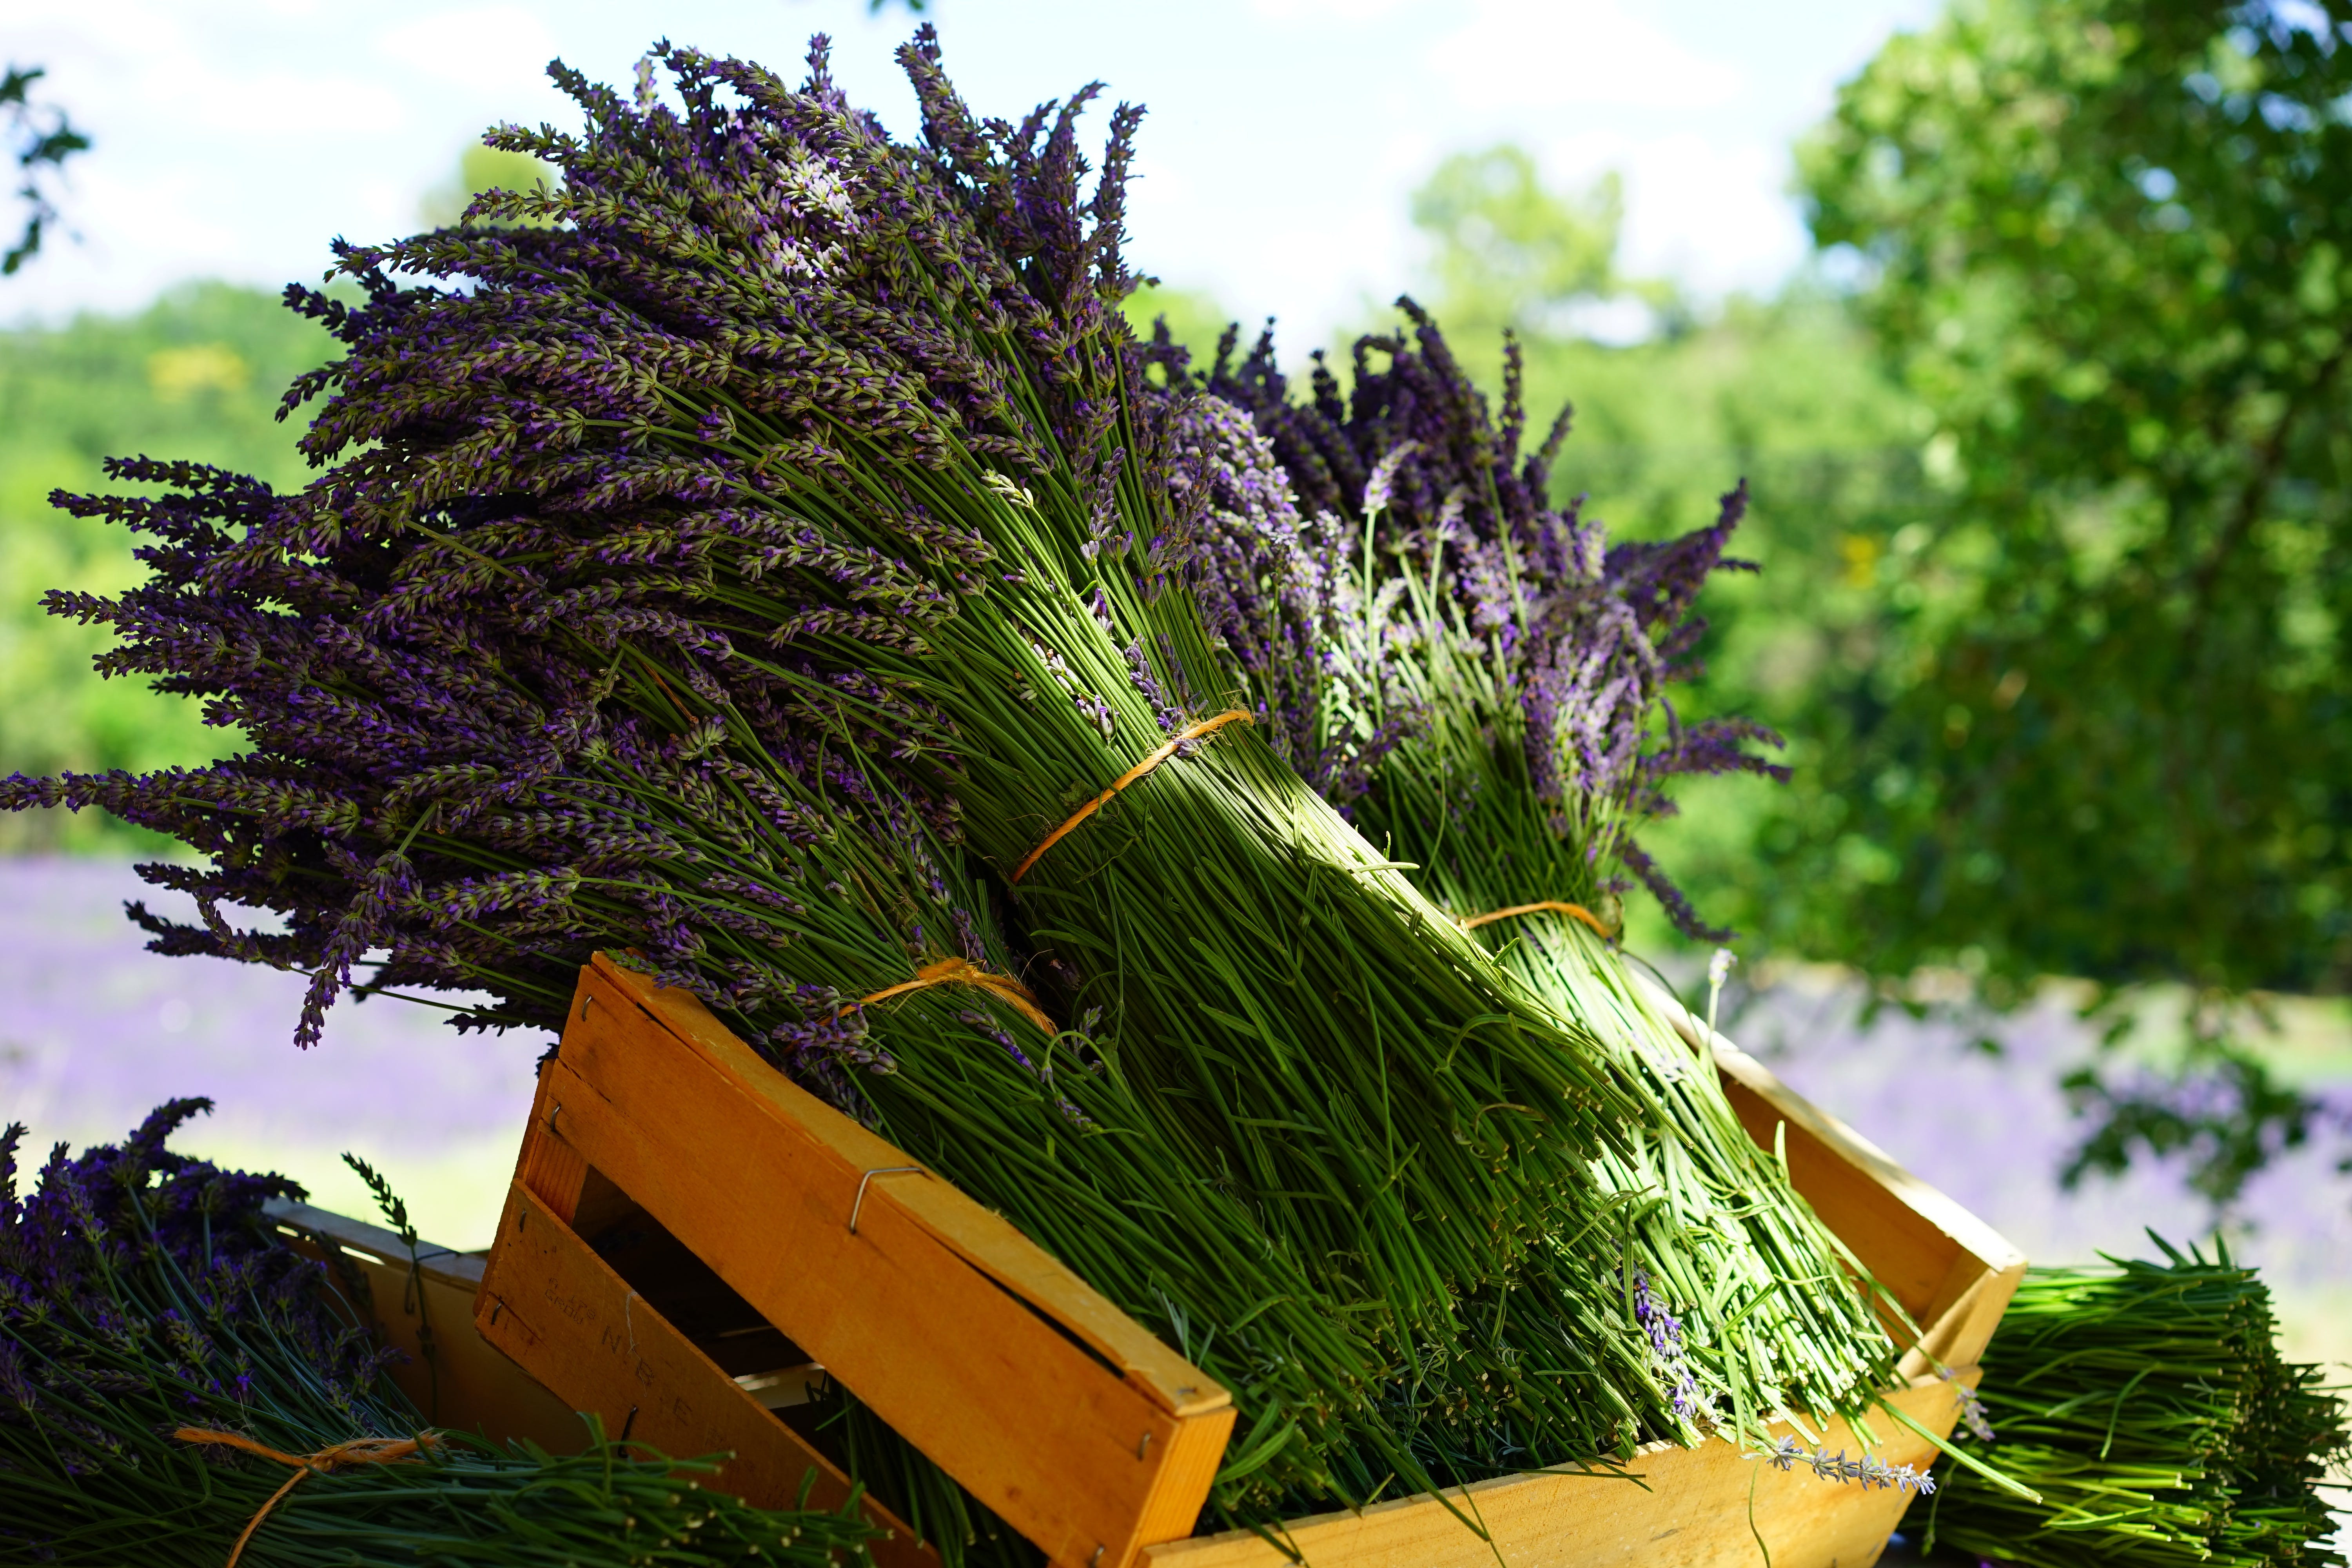 Piles of Lavander Flowers in Wooden Crate